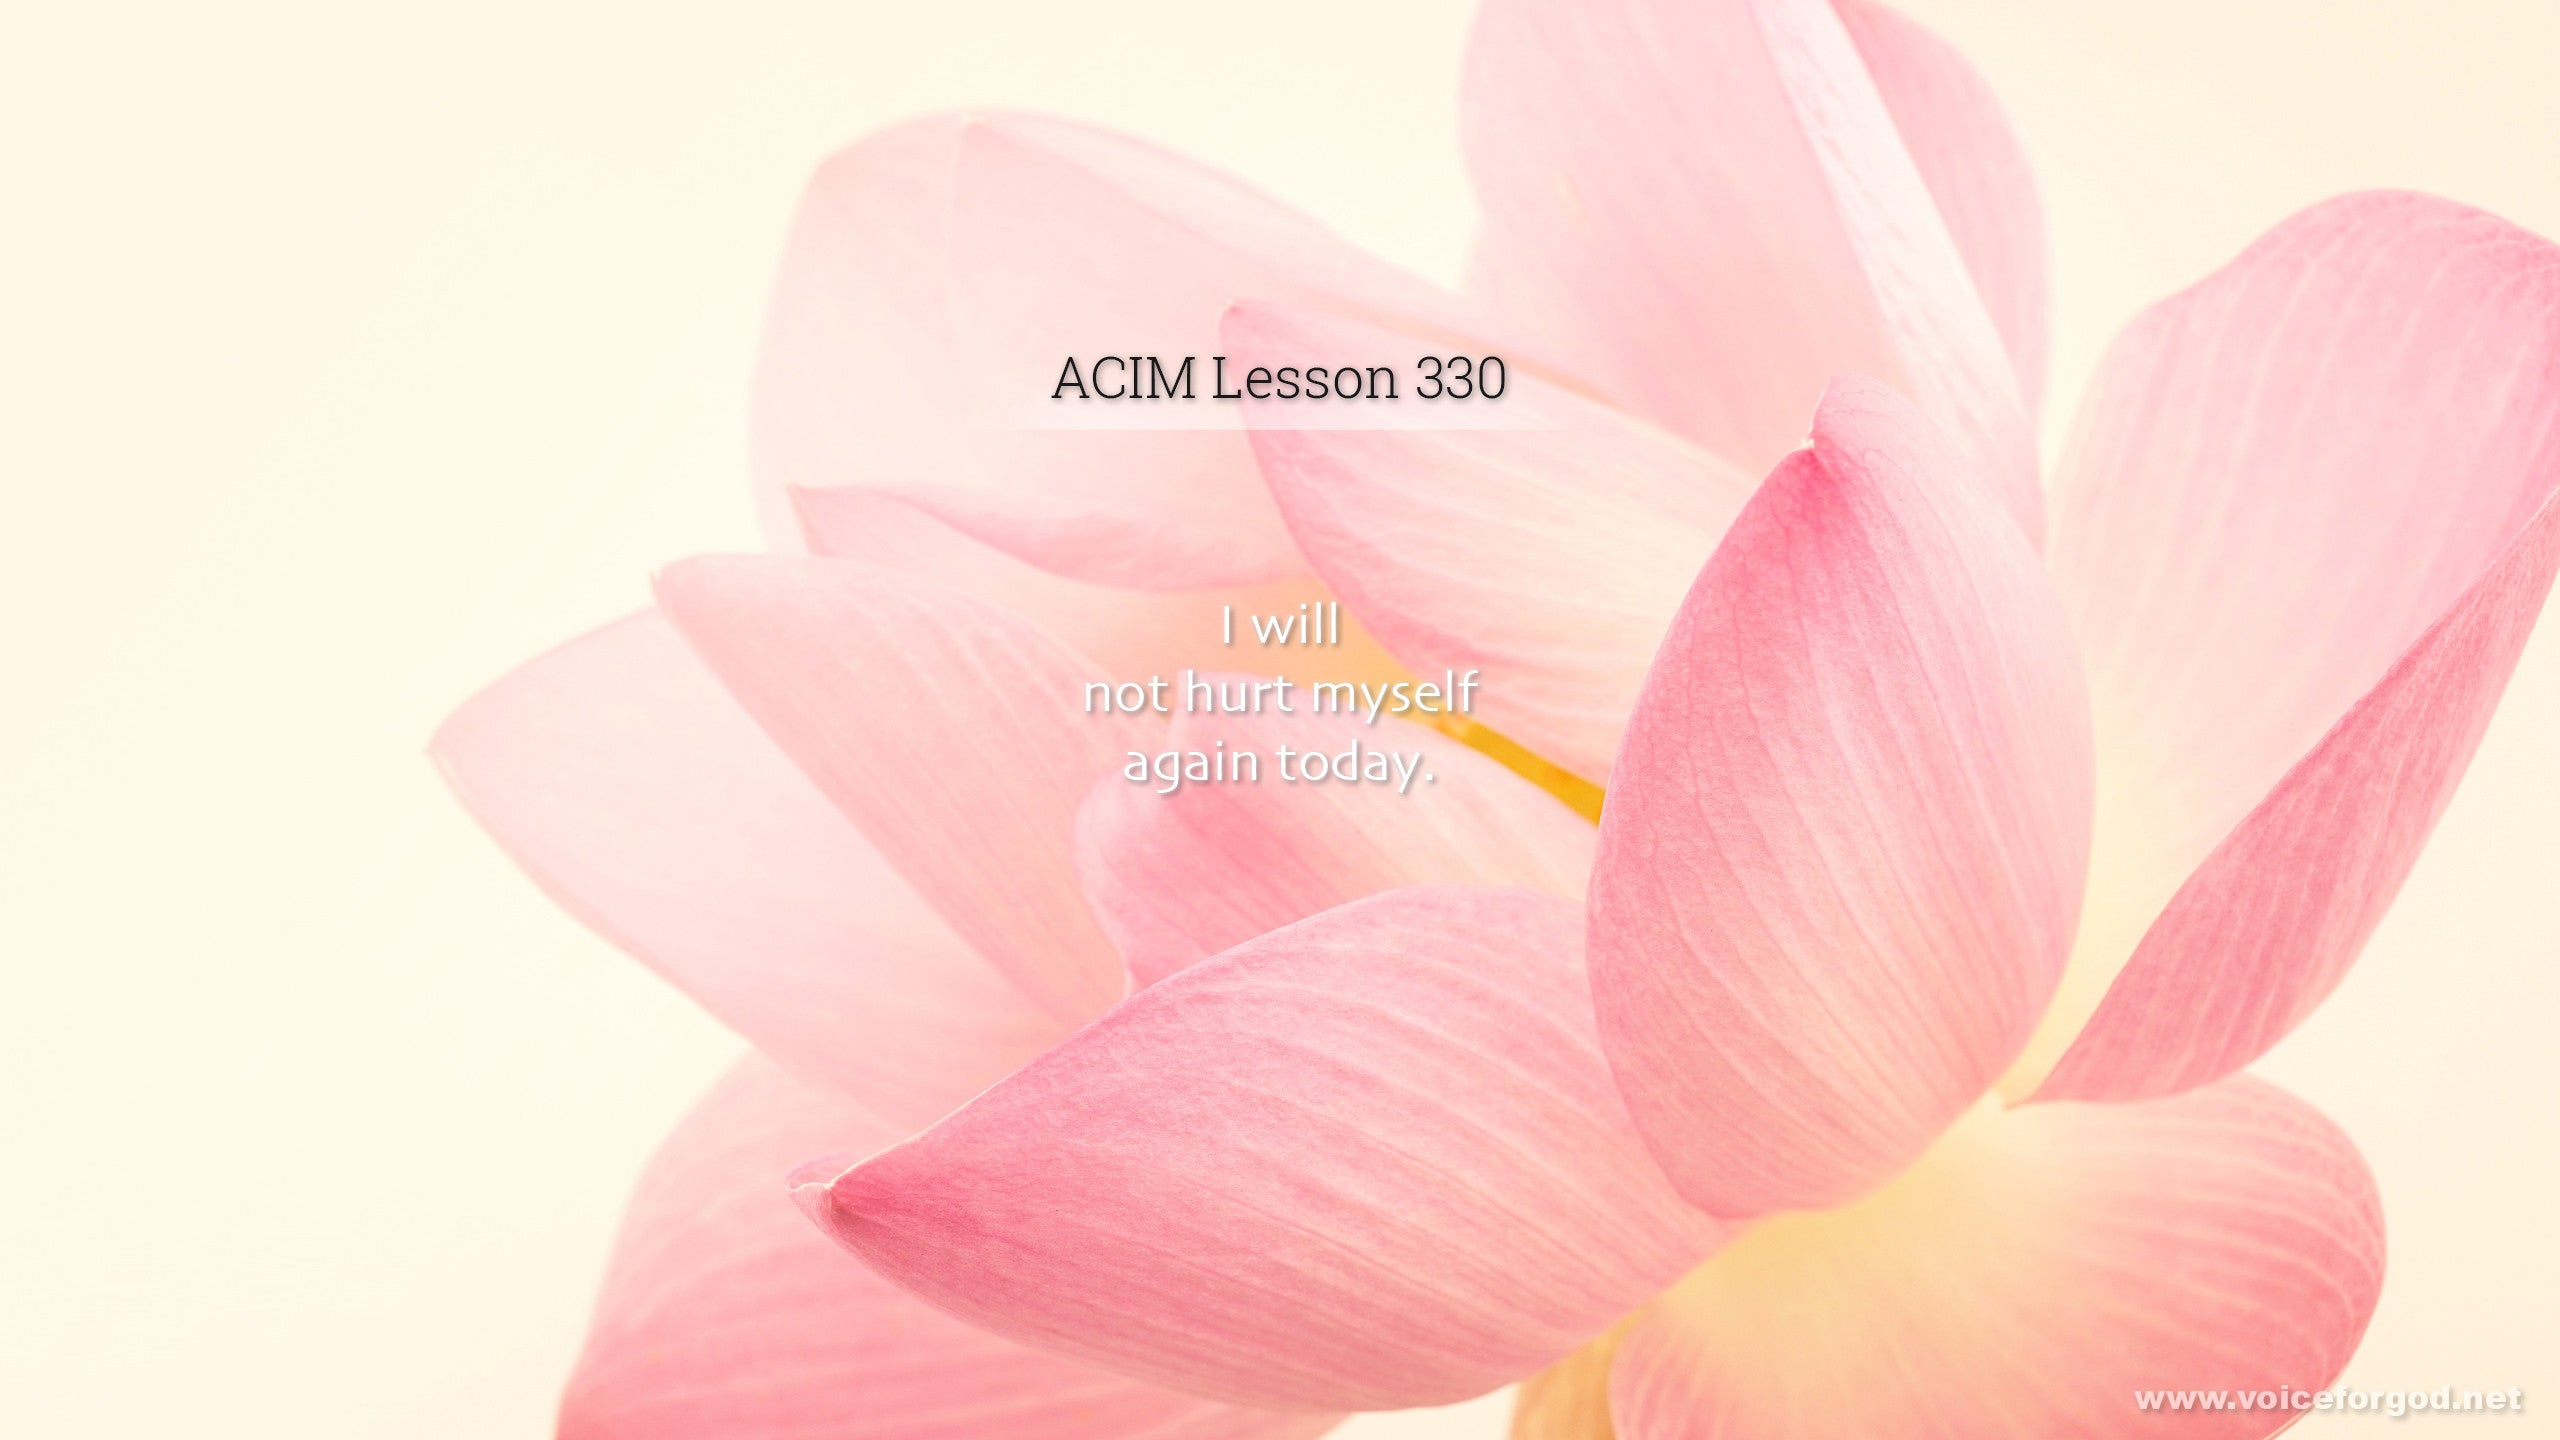 ACIM Lesson 330 - A Course in Miracles Workbook Lesson 330